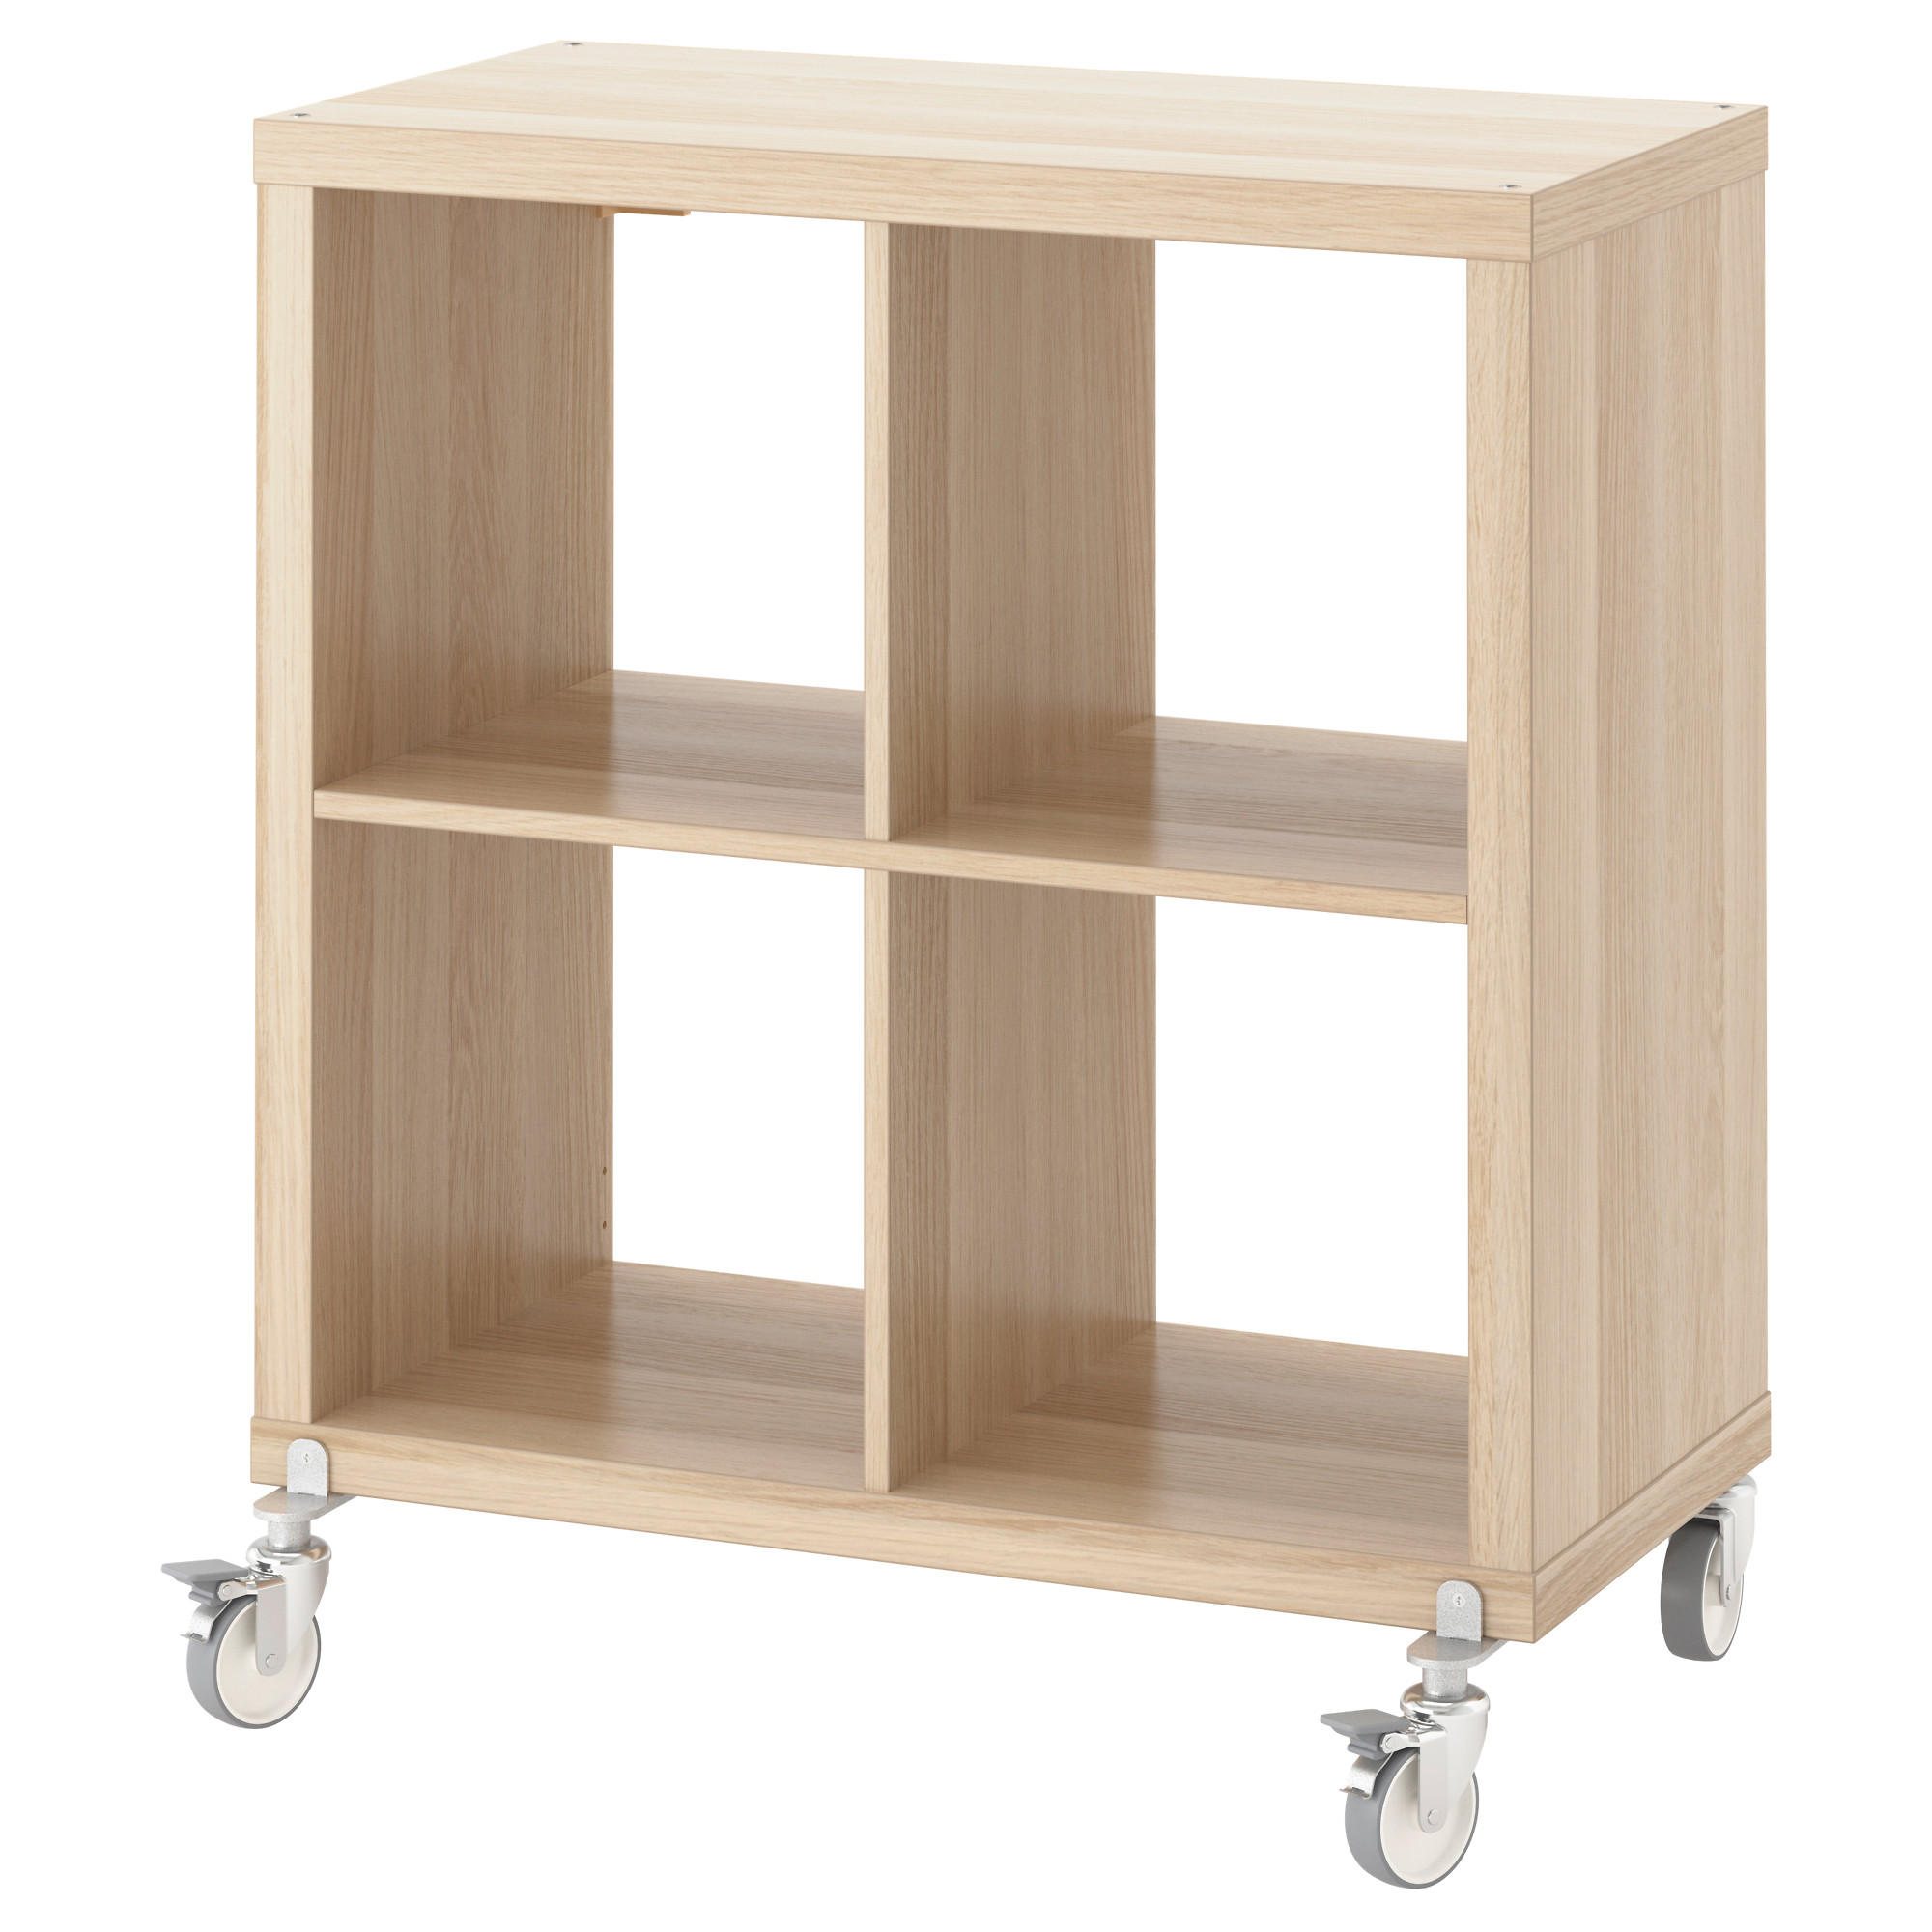 Kallax Shelving Unit On Castors Ikea # Notice Expedit Ikea